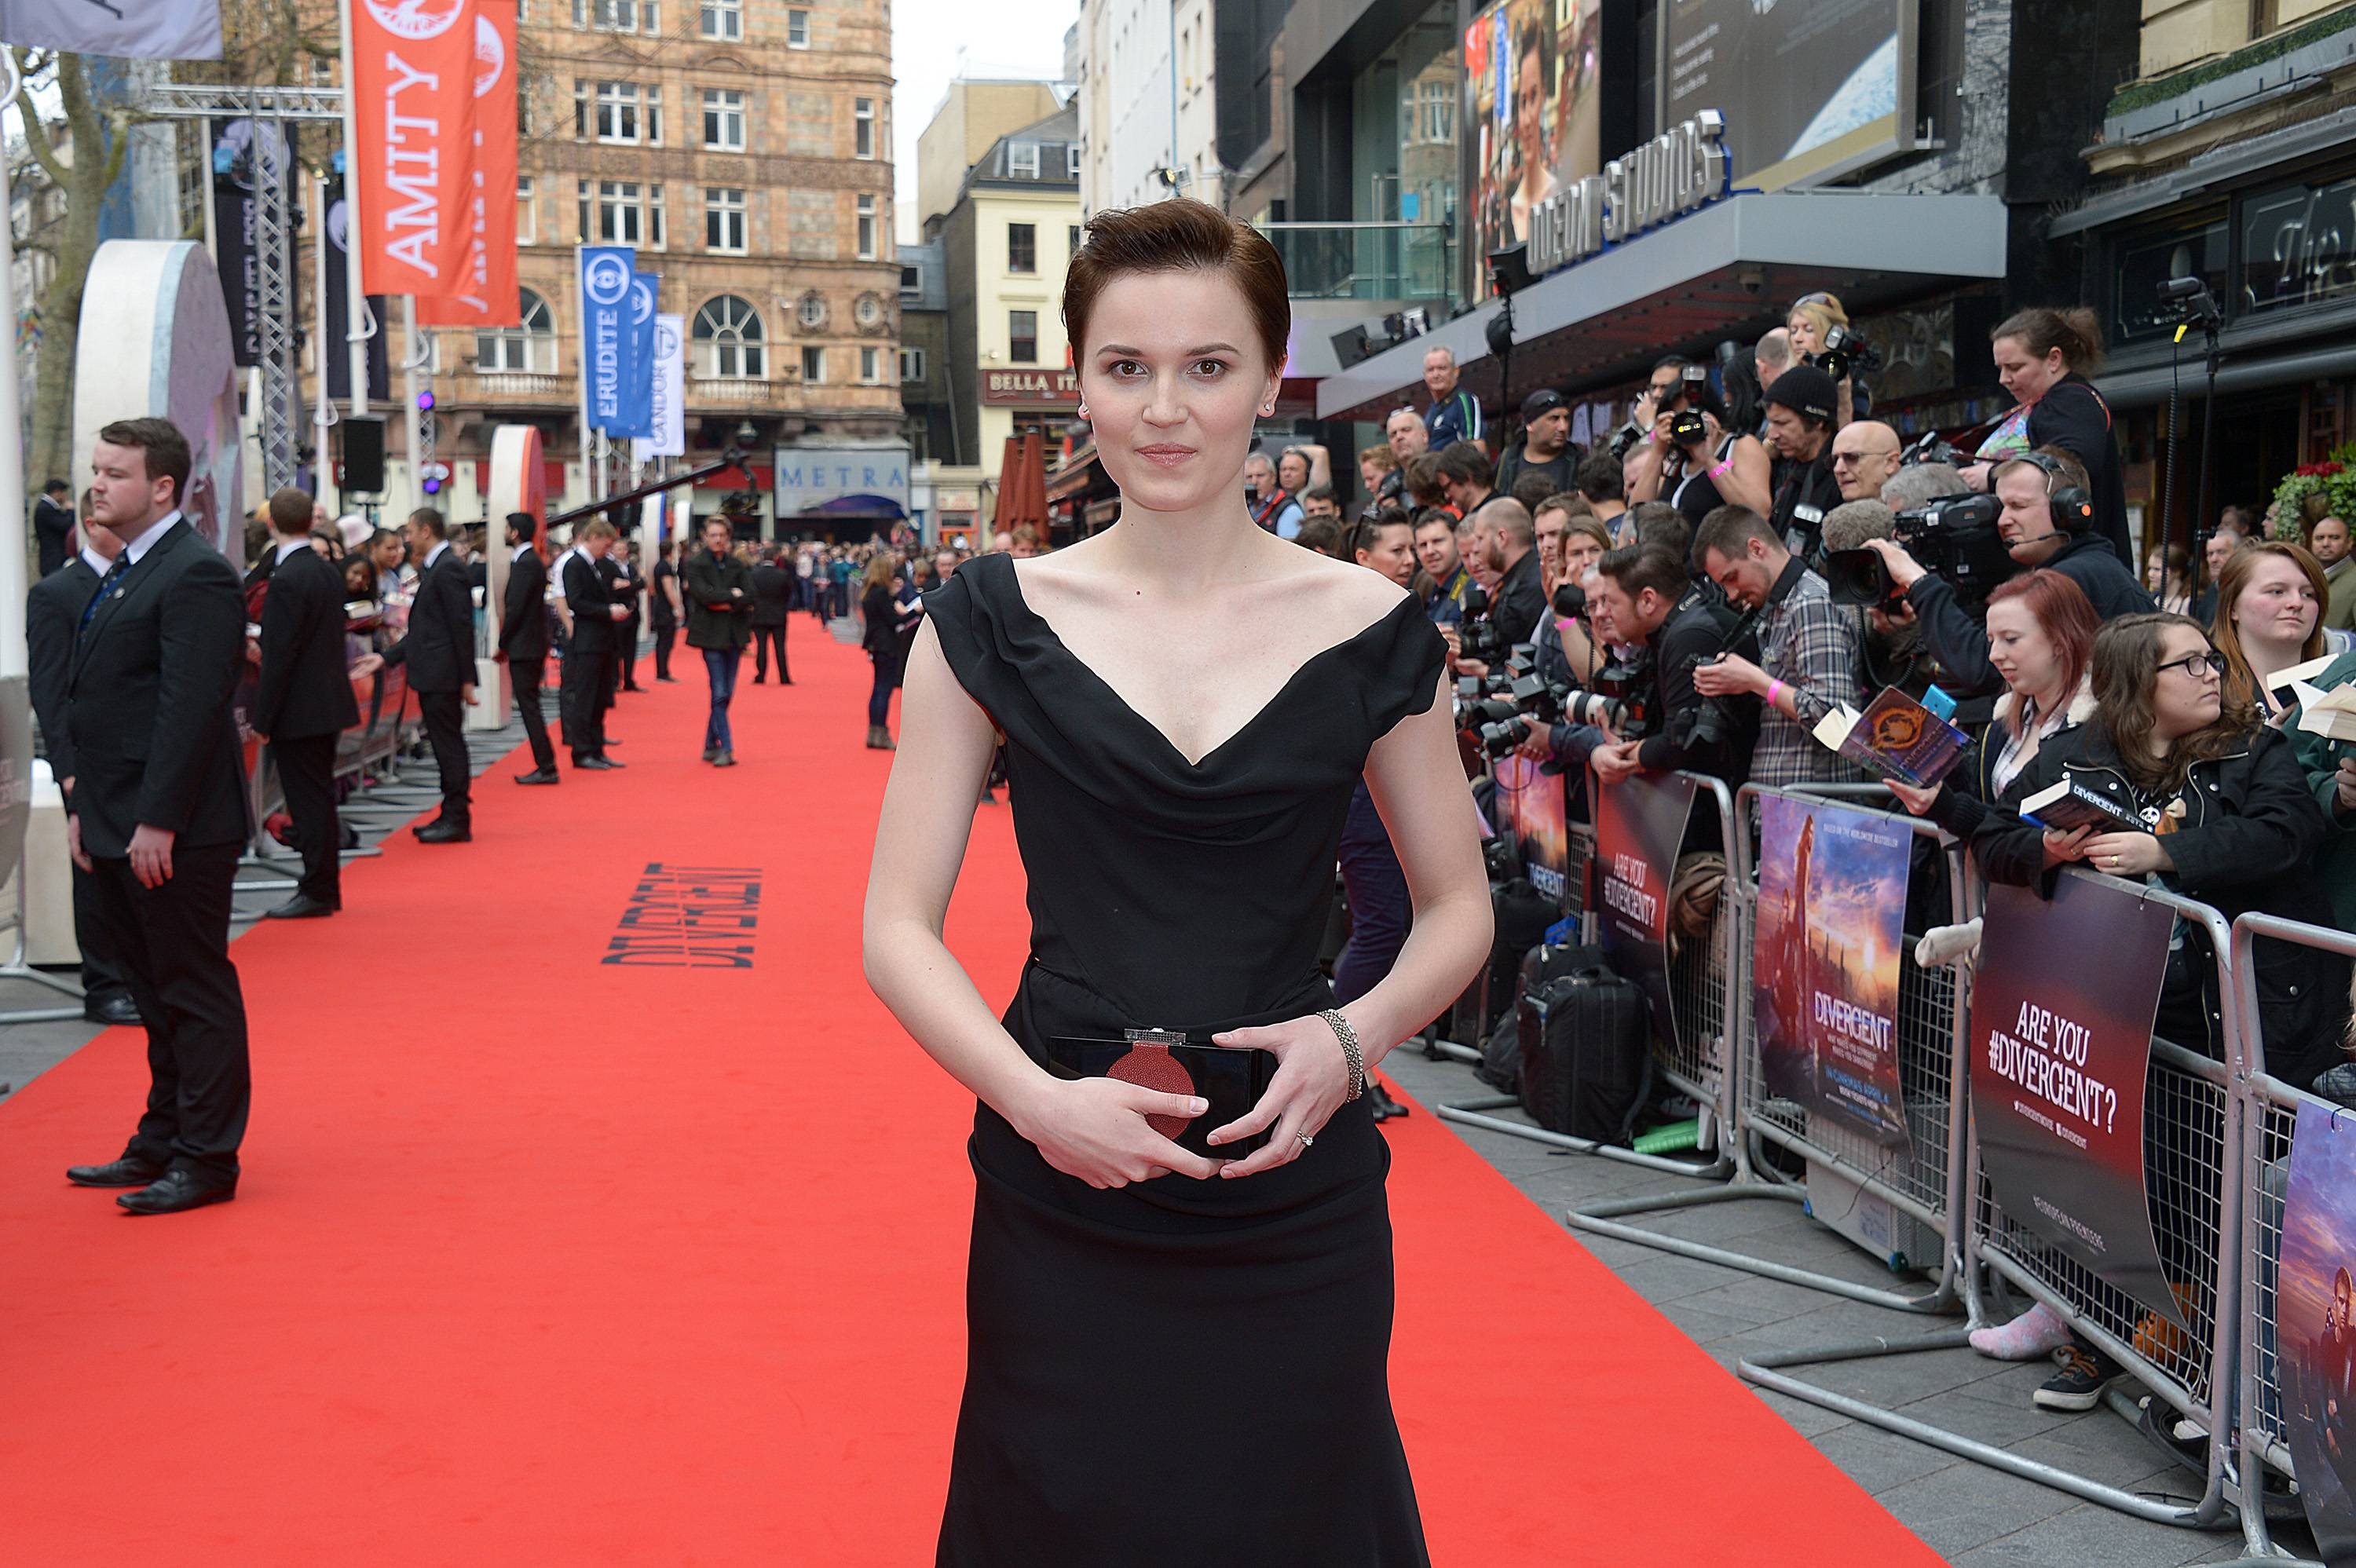 US writer Veronica Roth arrives at the European film premiere of Divergent, in Leicester Square, London, Sunday March 30, 2014. (Photo by Jon Furniss/Invision/AP)